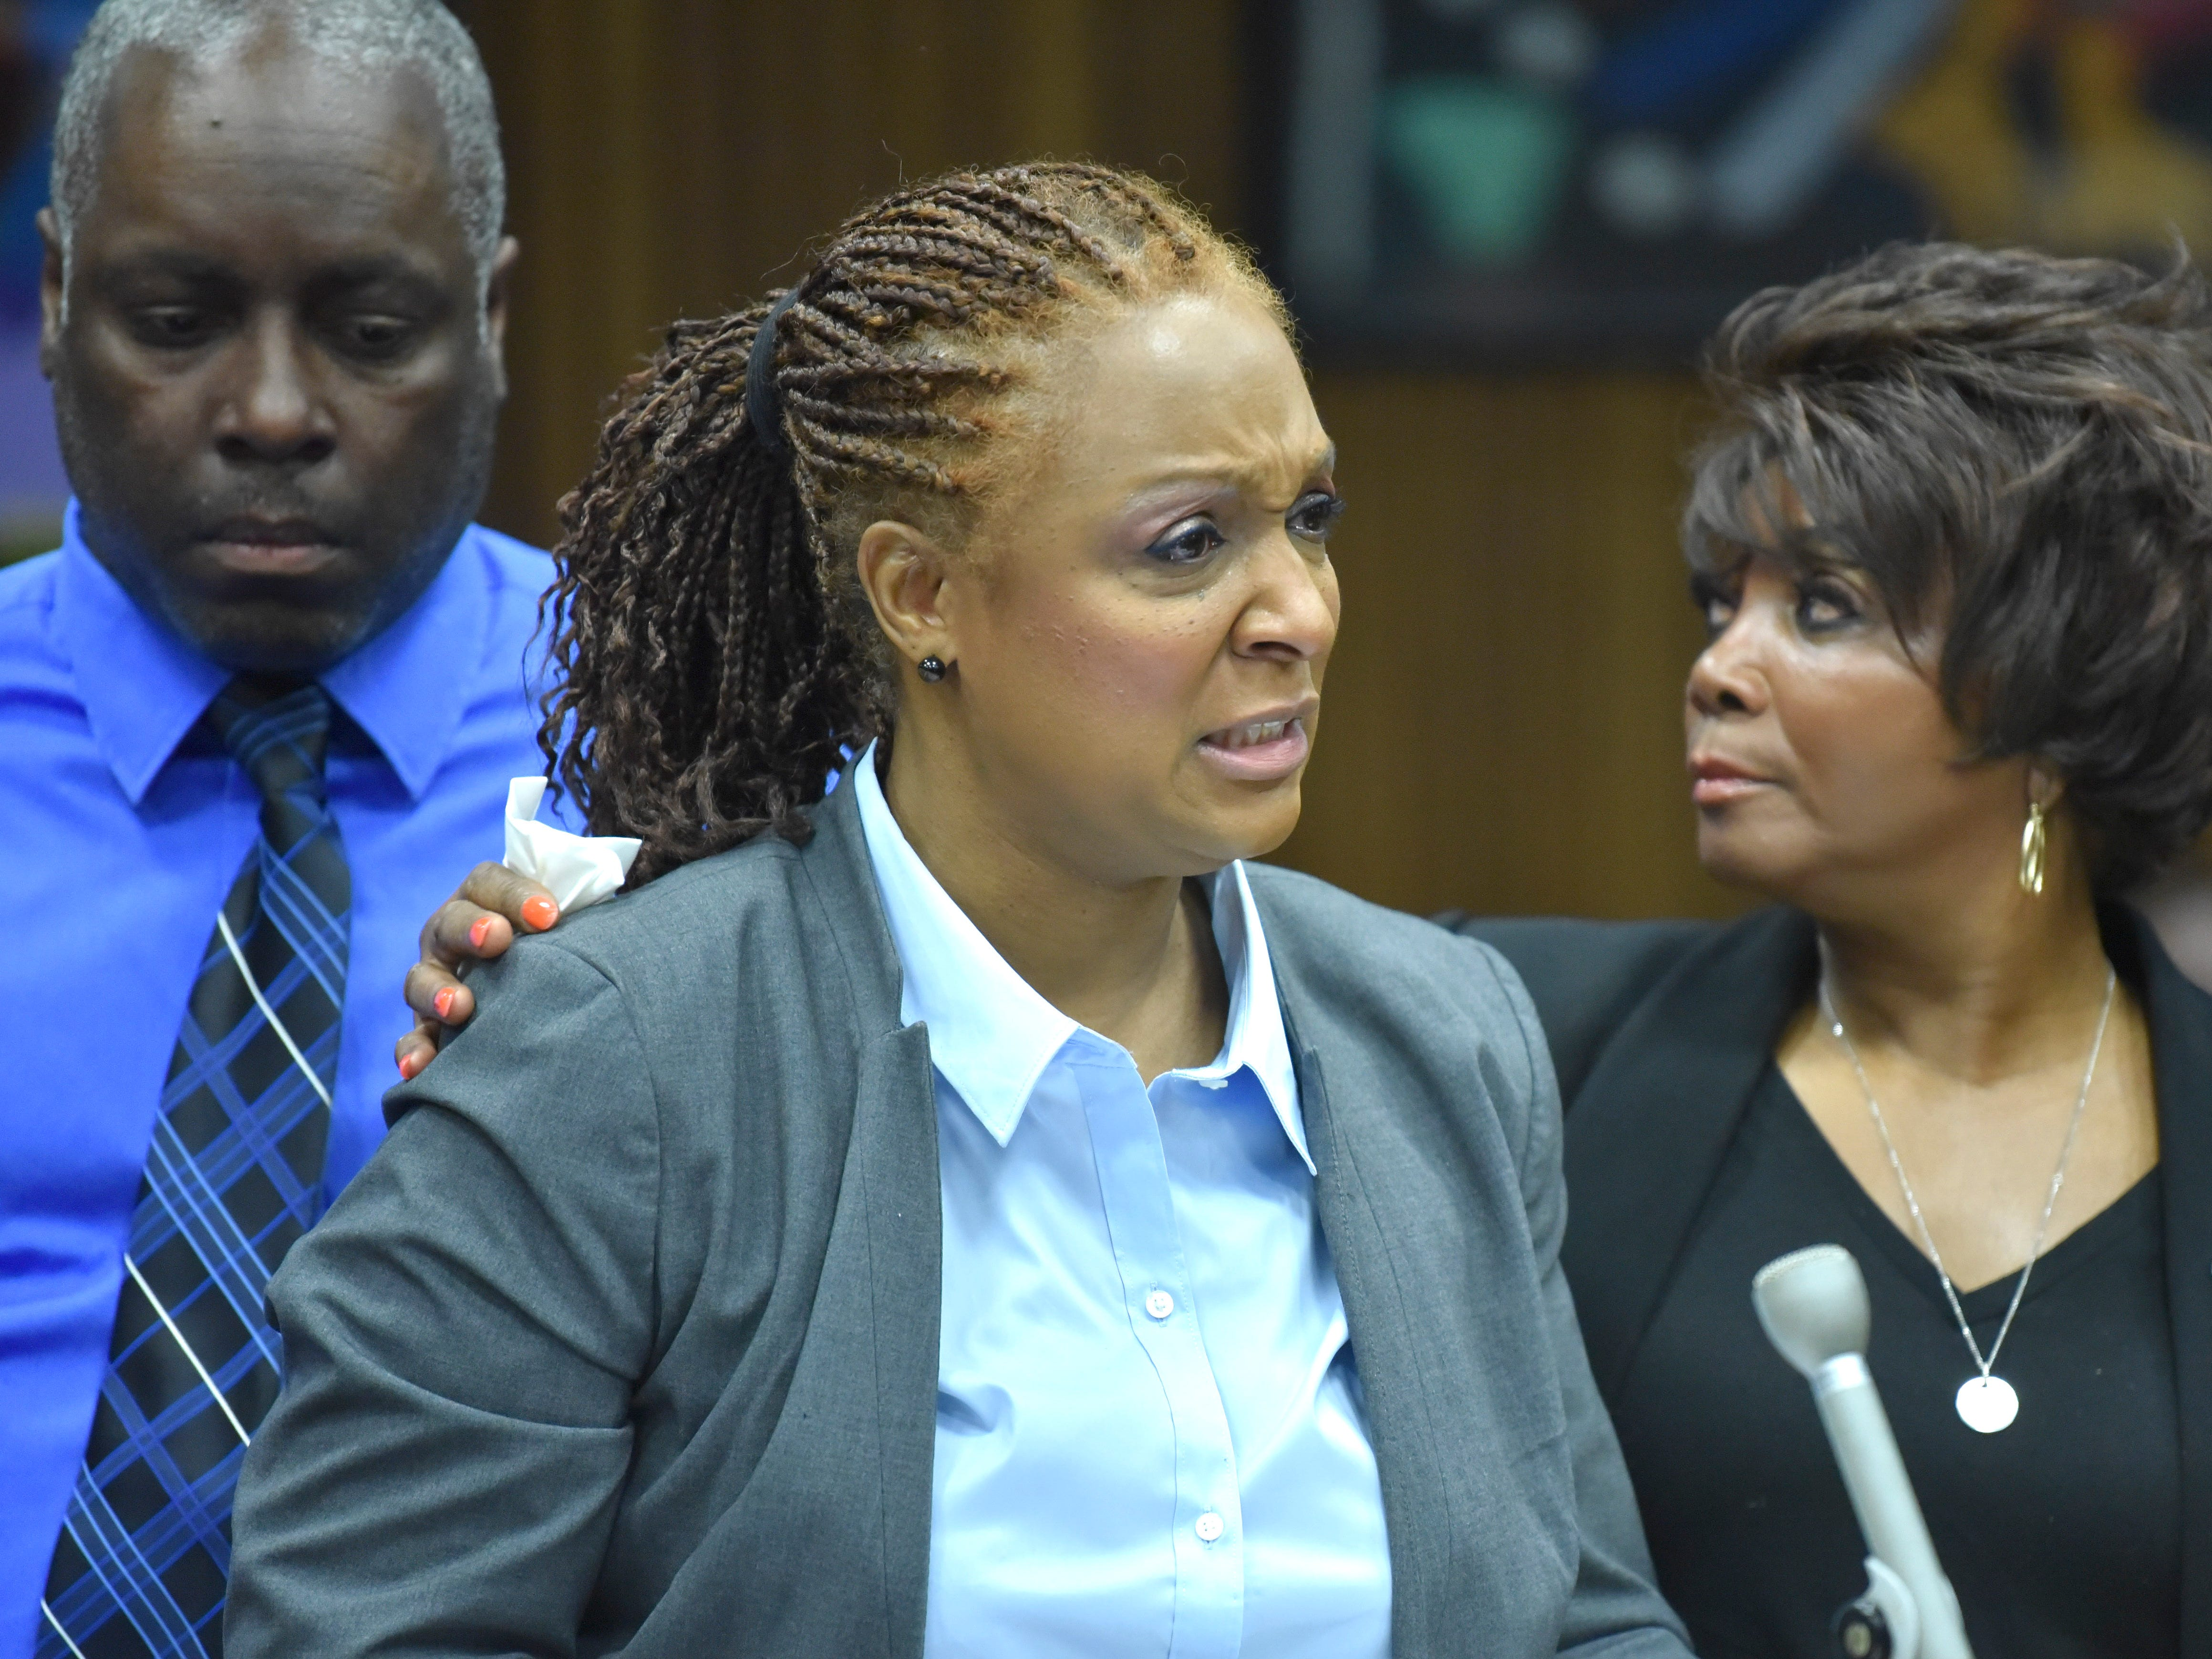 Nikole Flowers, center, mother of Glenn Doss Jr., cries while giving her victim's impact statement as she is comforted by her husband, Ronald Flowers, left, and Doss Jr.'s grandmother, Beretha Bradley, right.